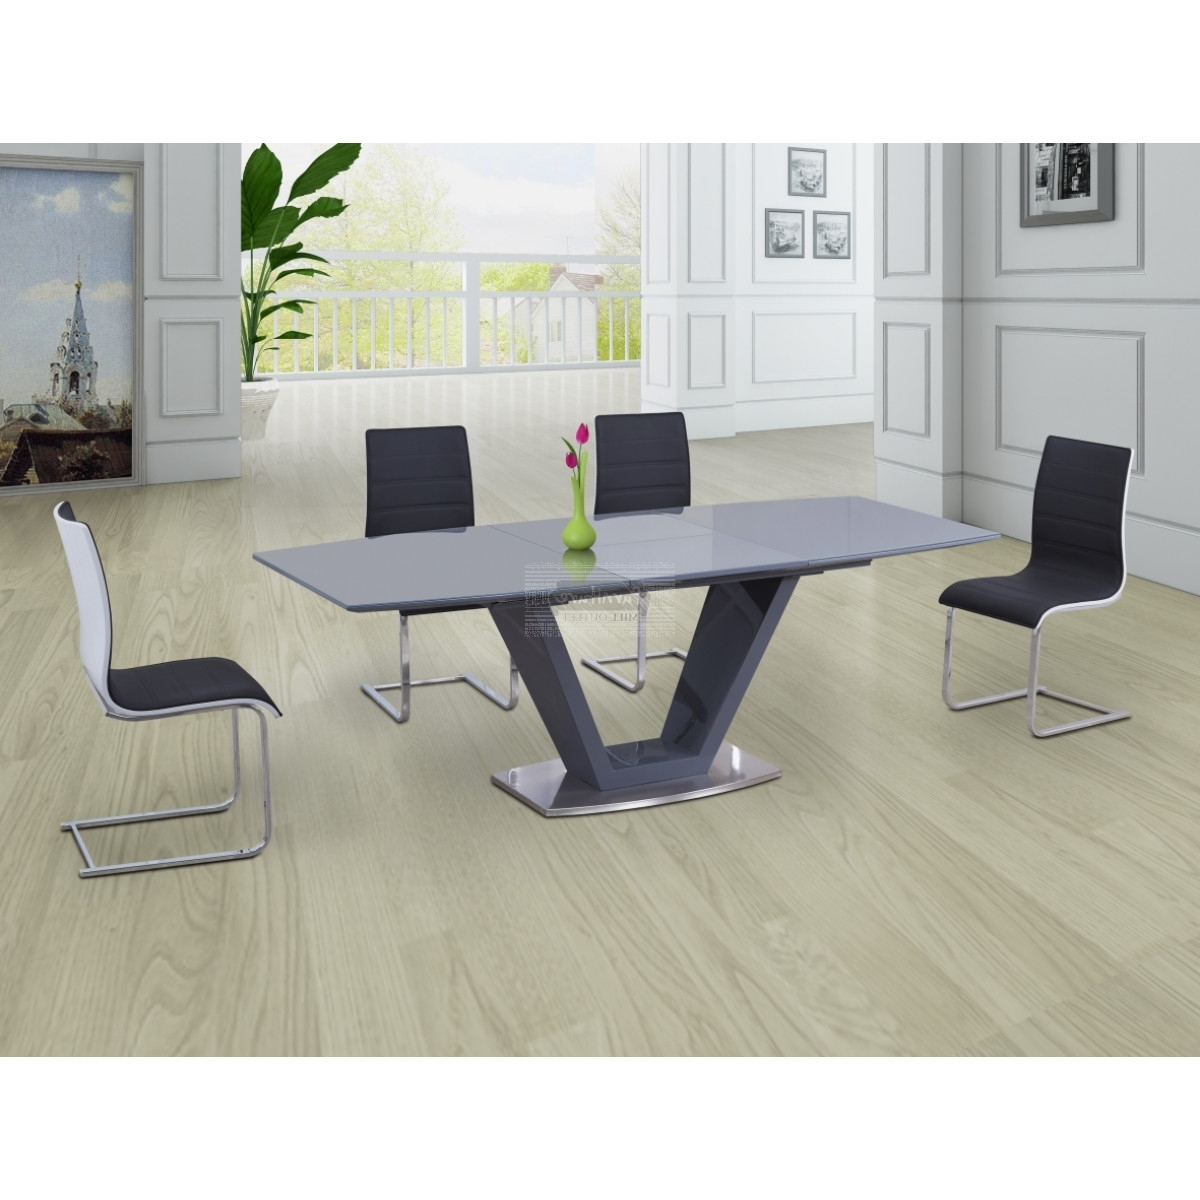 Lorgato Grey High Gloss Extending Dining Table – 160Cm To 220Cm With Regard To 2018 Cream High Gloss Dining Tables (View 15 of 25)